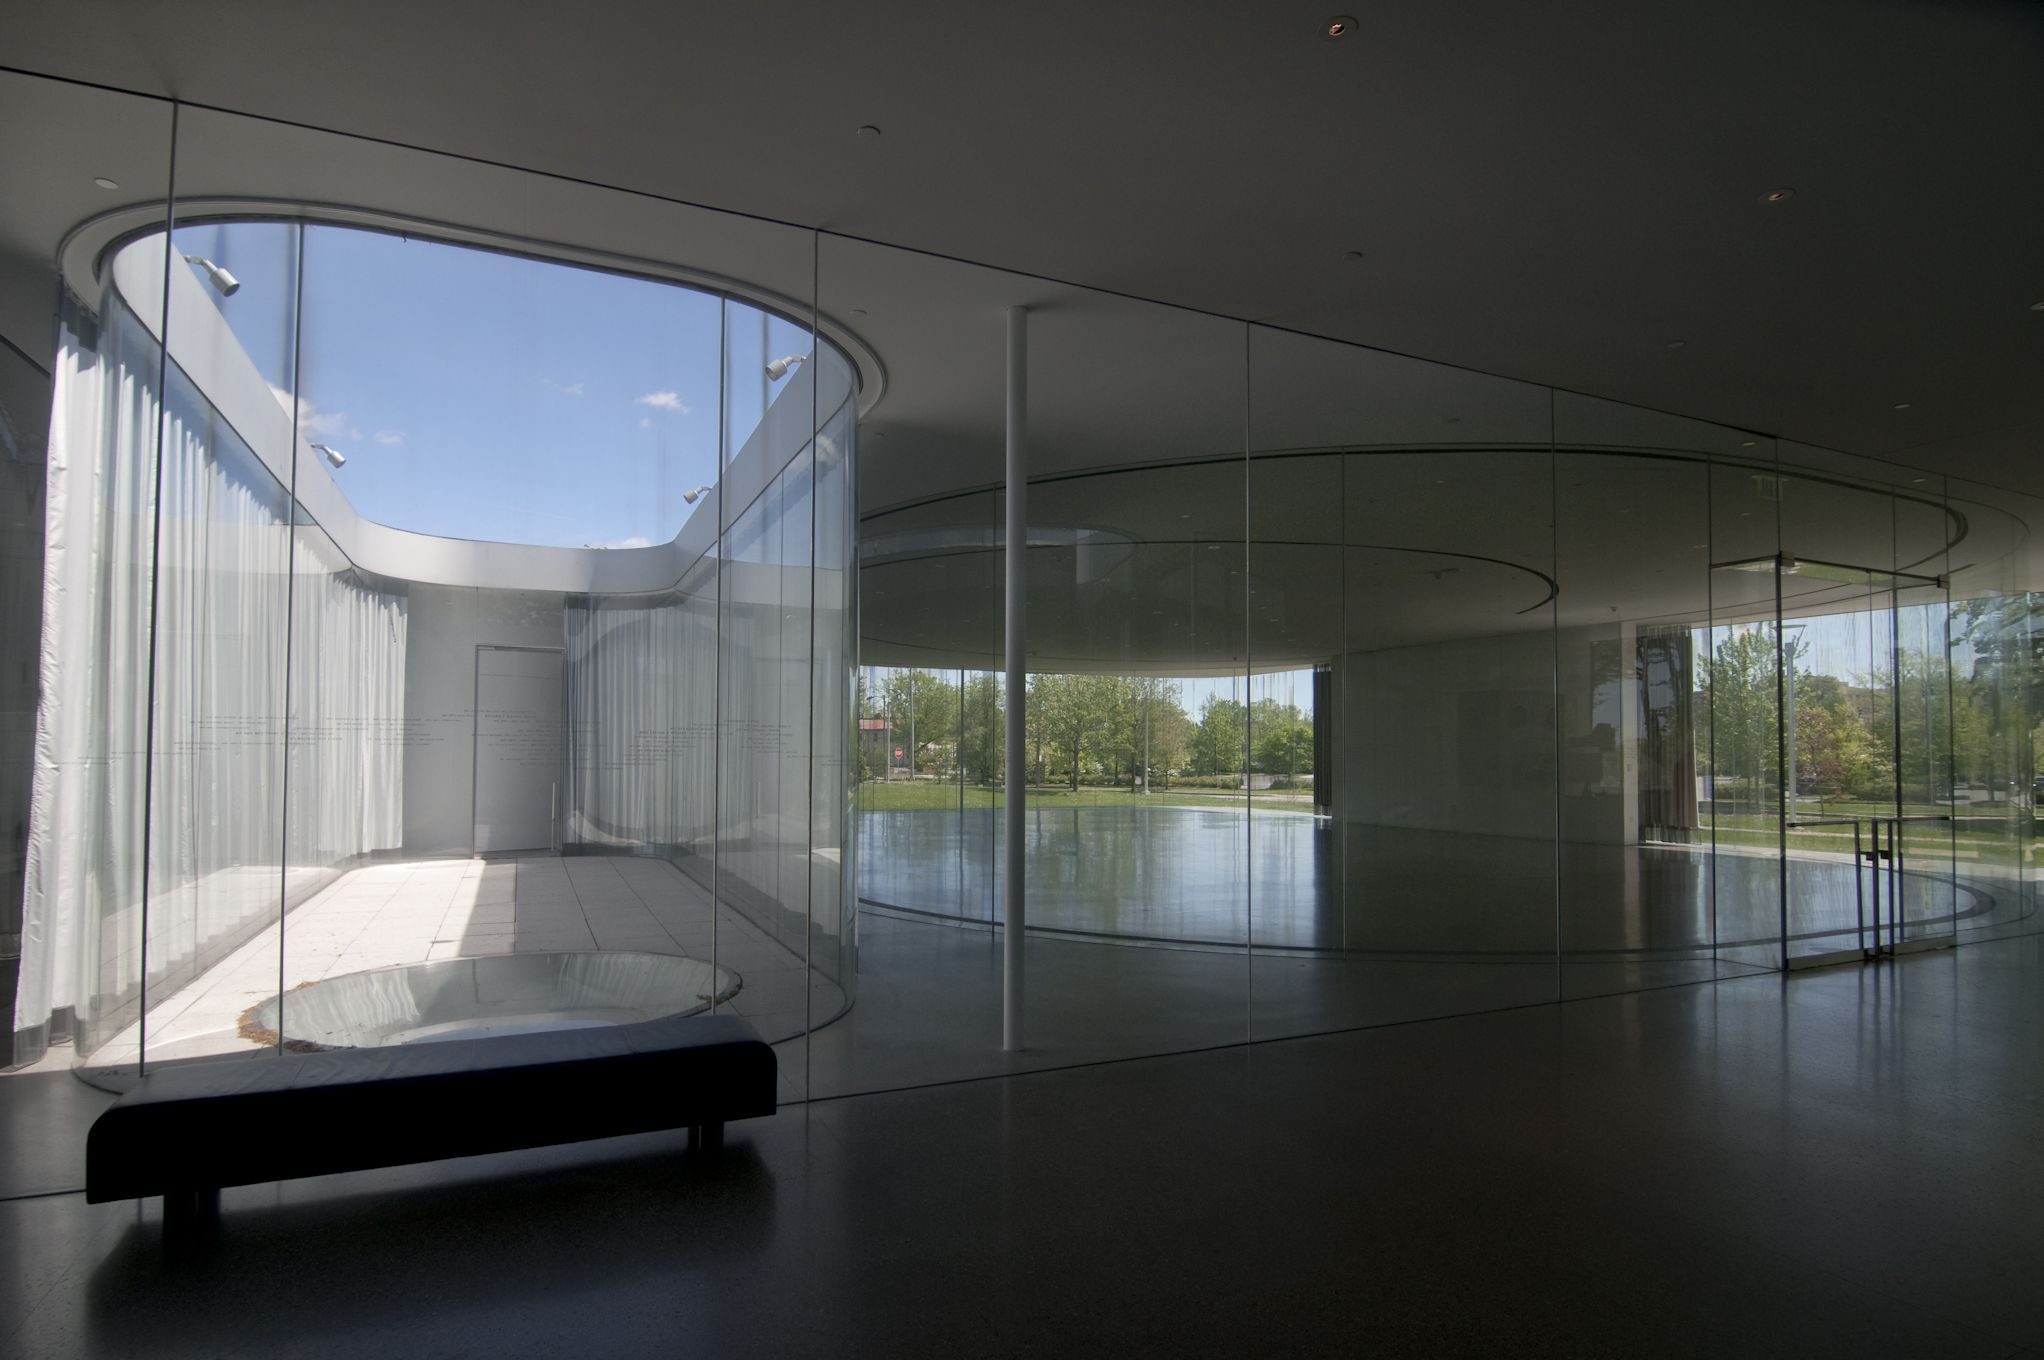 Interior courtyard and glassalon at the toledo museum of art glass pavilion gallery by sanaa